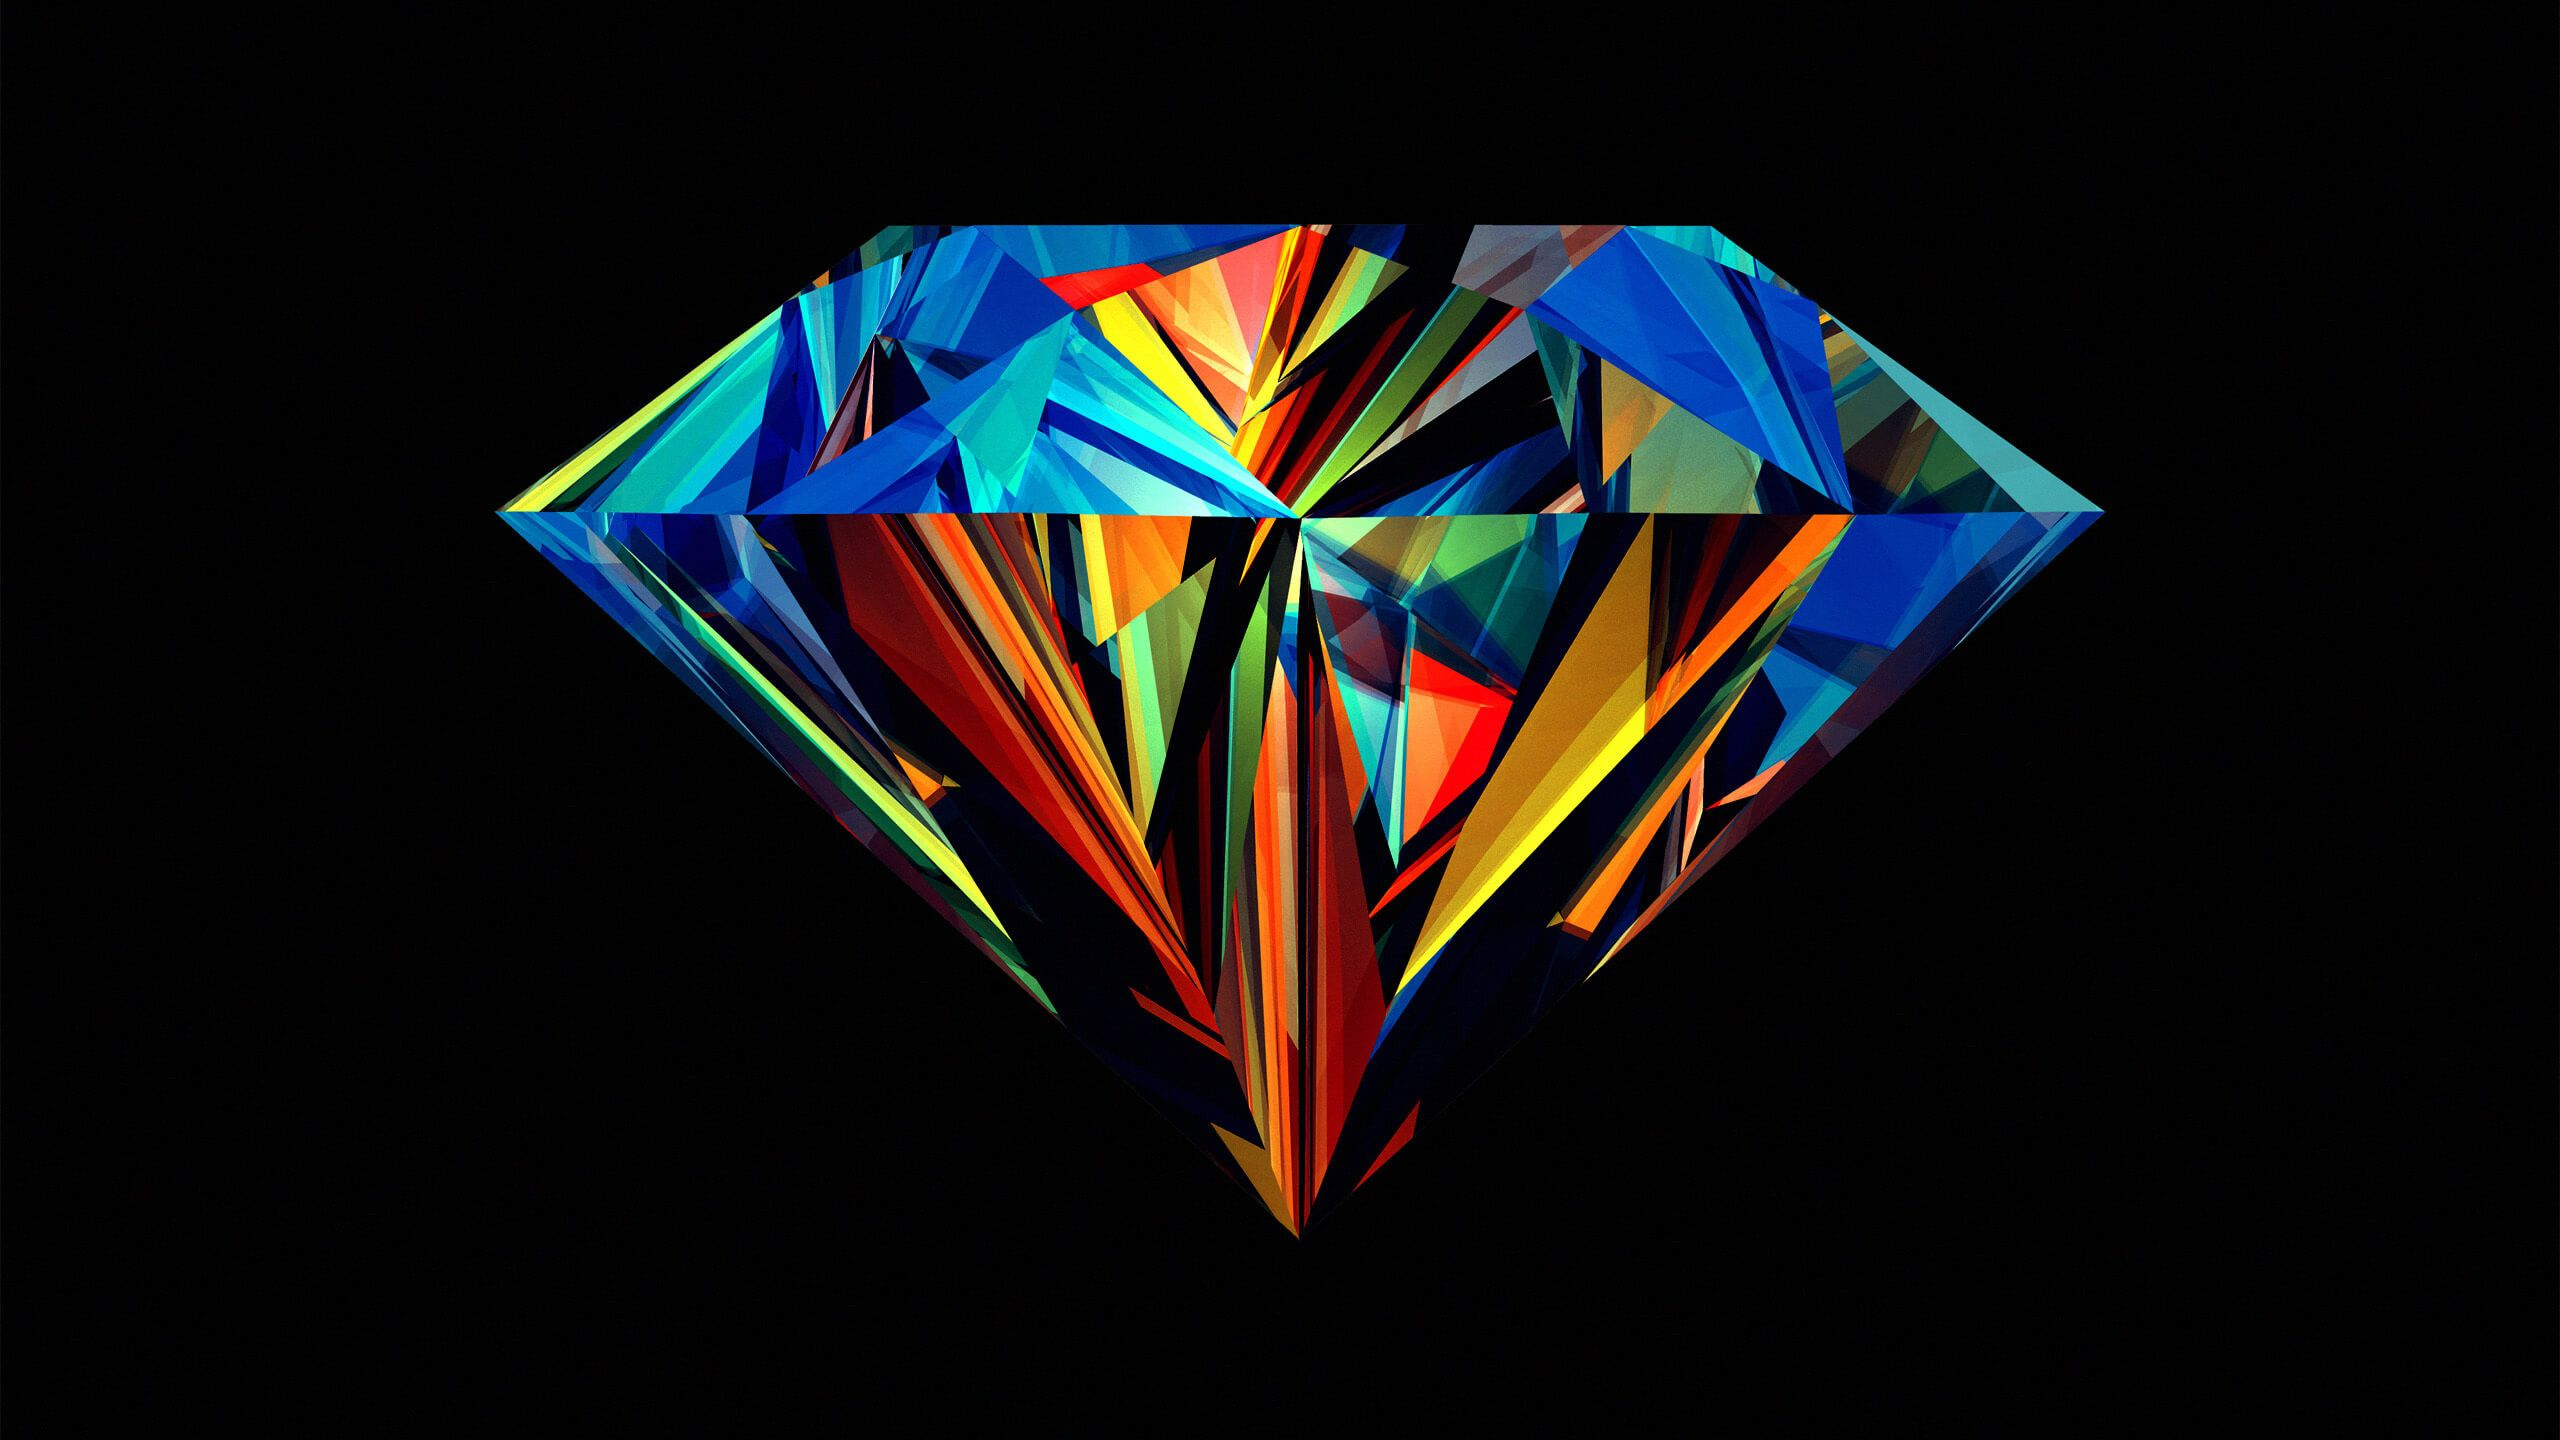 2560x1440 Colorful Diamond Hd Wallpaper For Youtube Channel Art